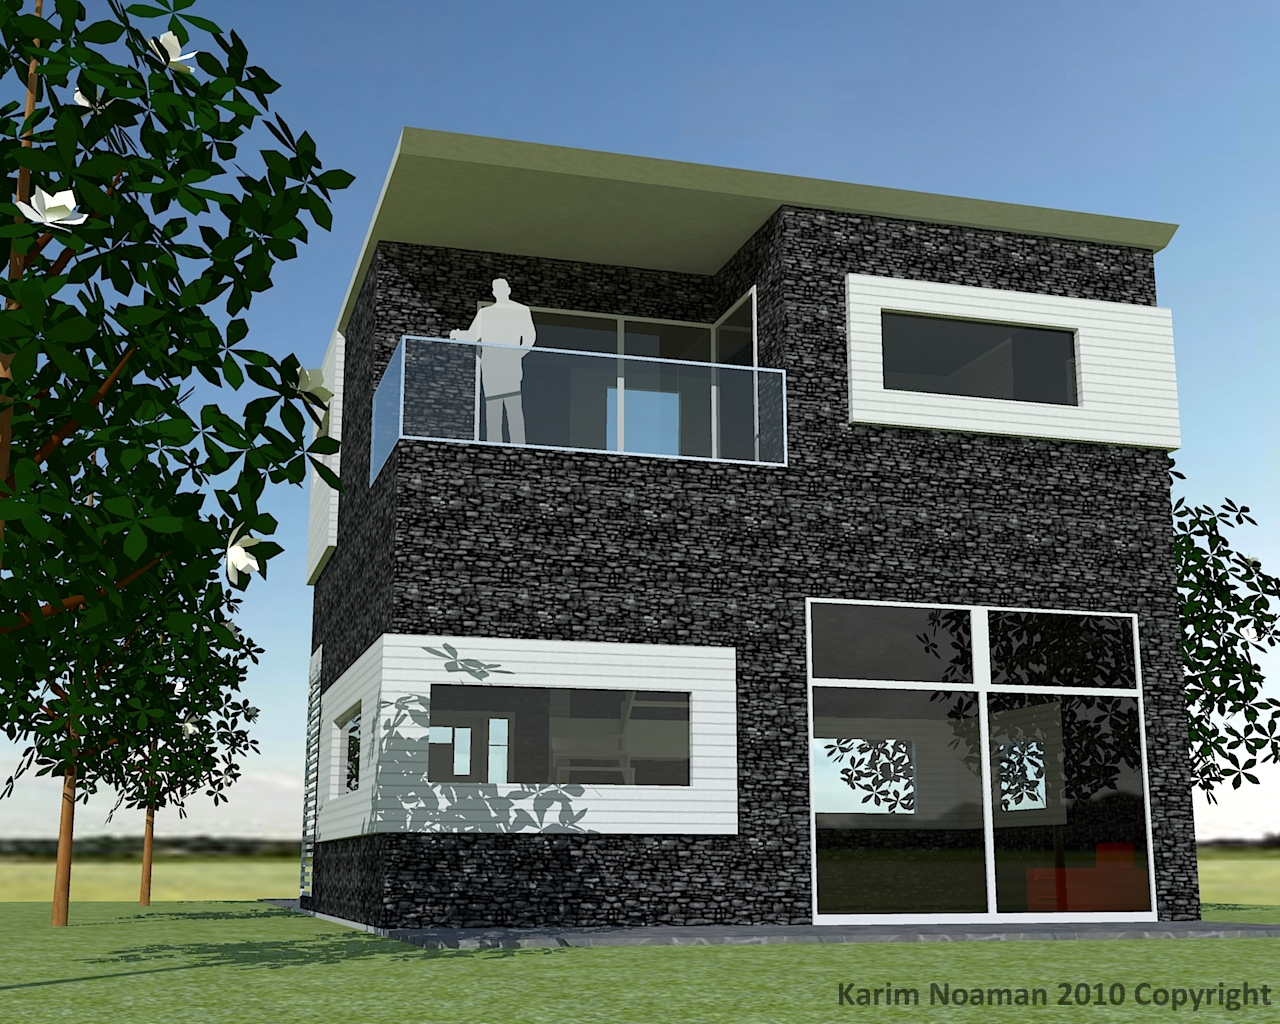 Simple modern house design by knoaman on deviantart Simple house model design